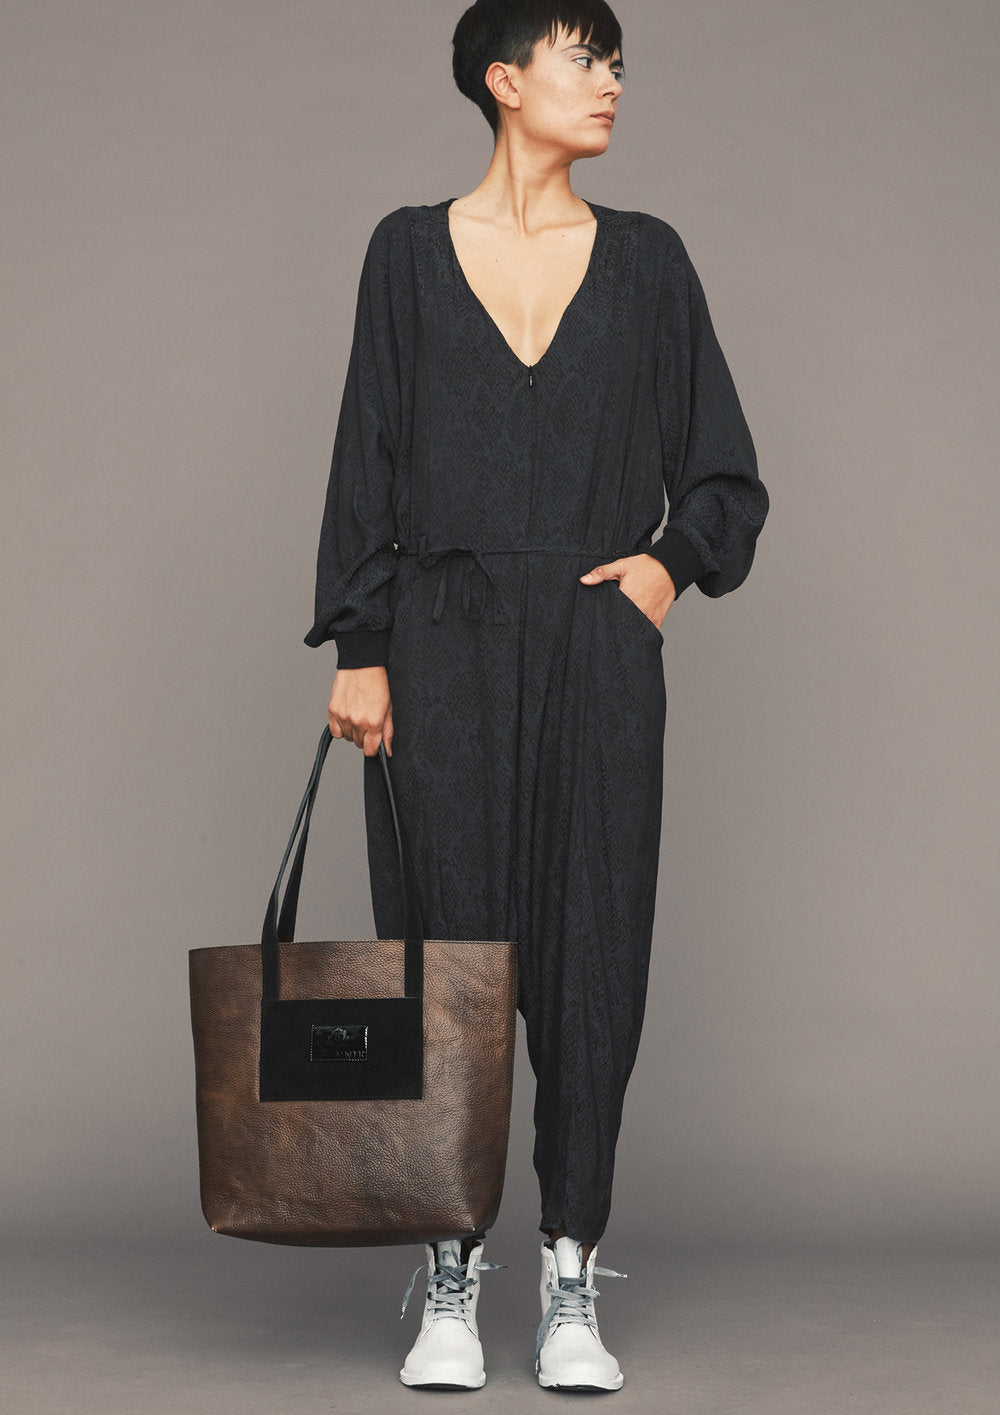 0ccfc198d4a8 JUMPSUIT LONG OVERSIZED - JACQUARD SATIN black snake - BERENIK